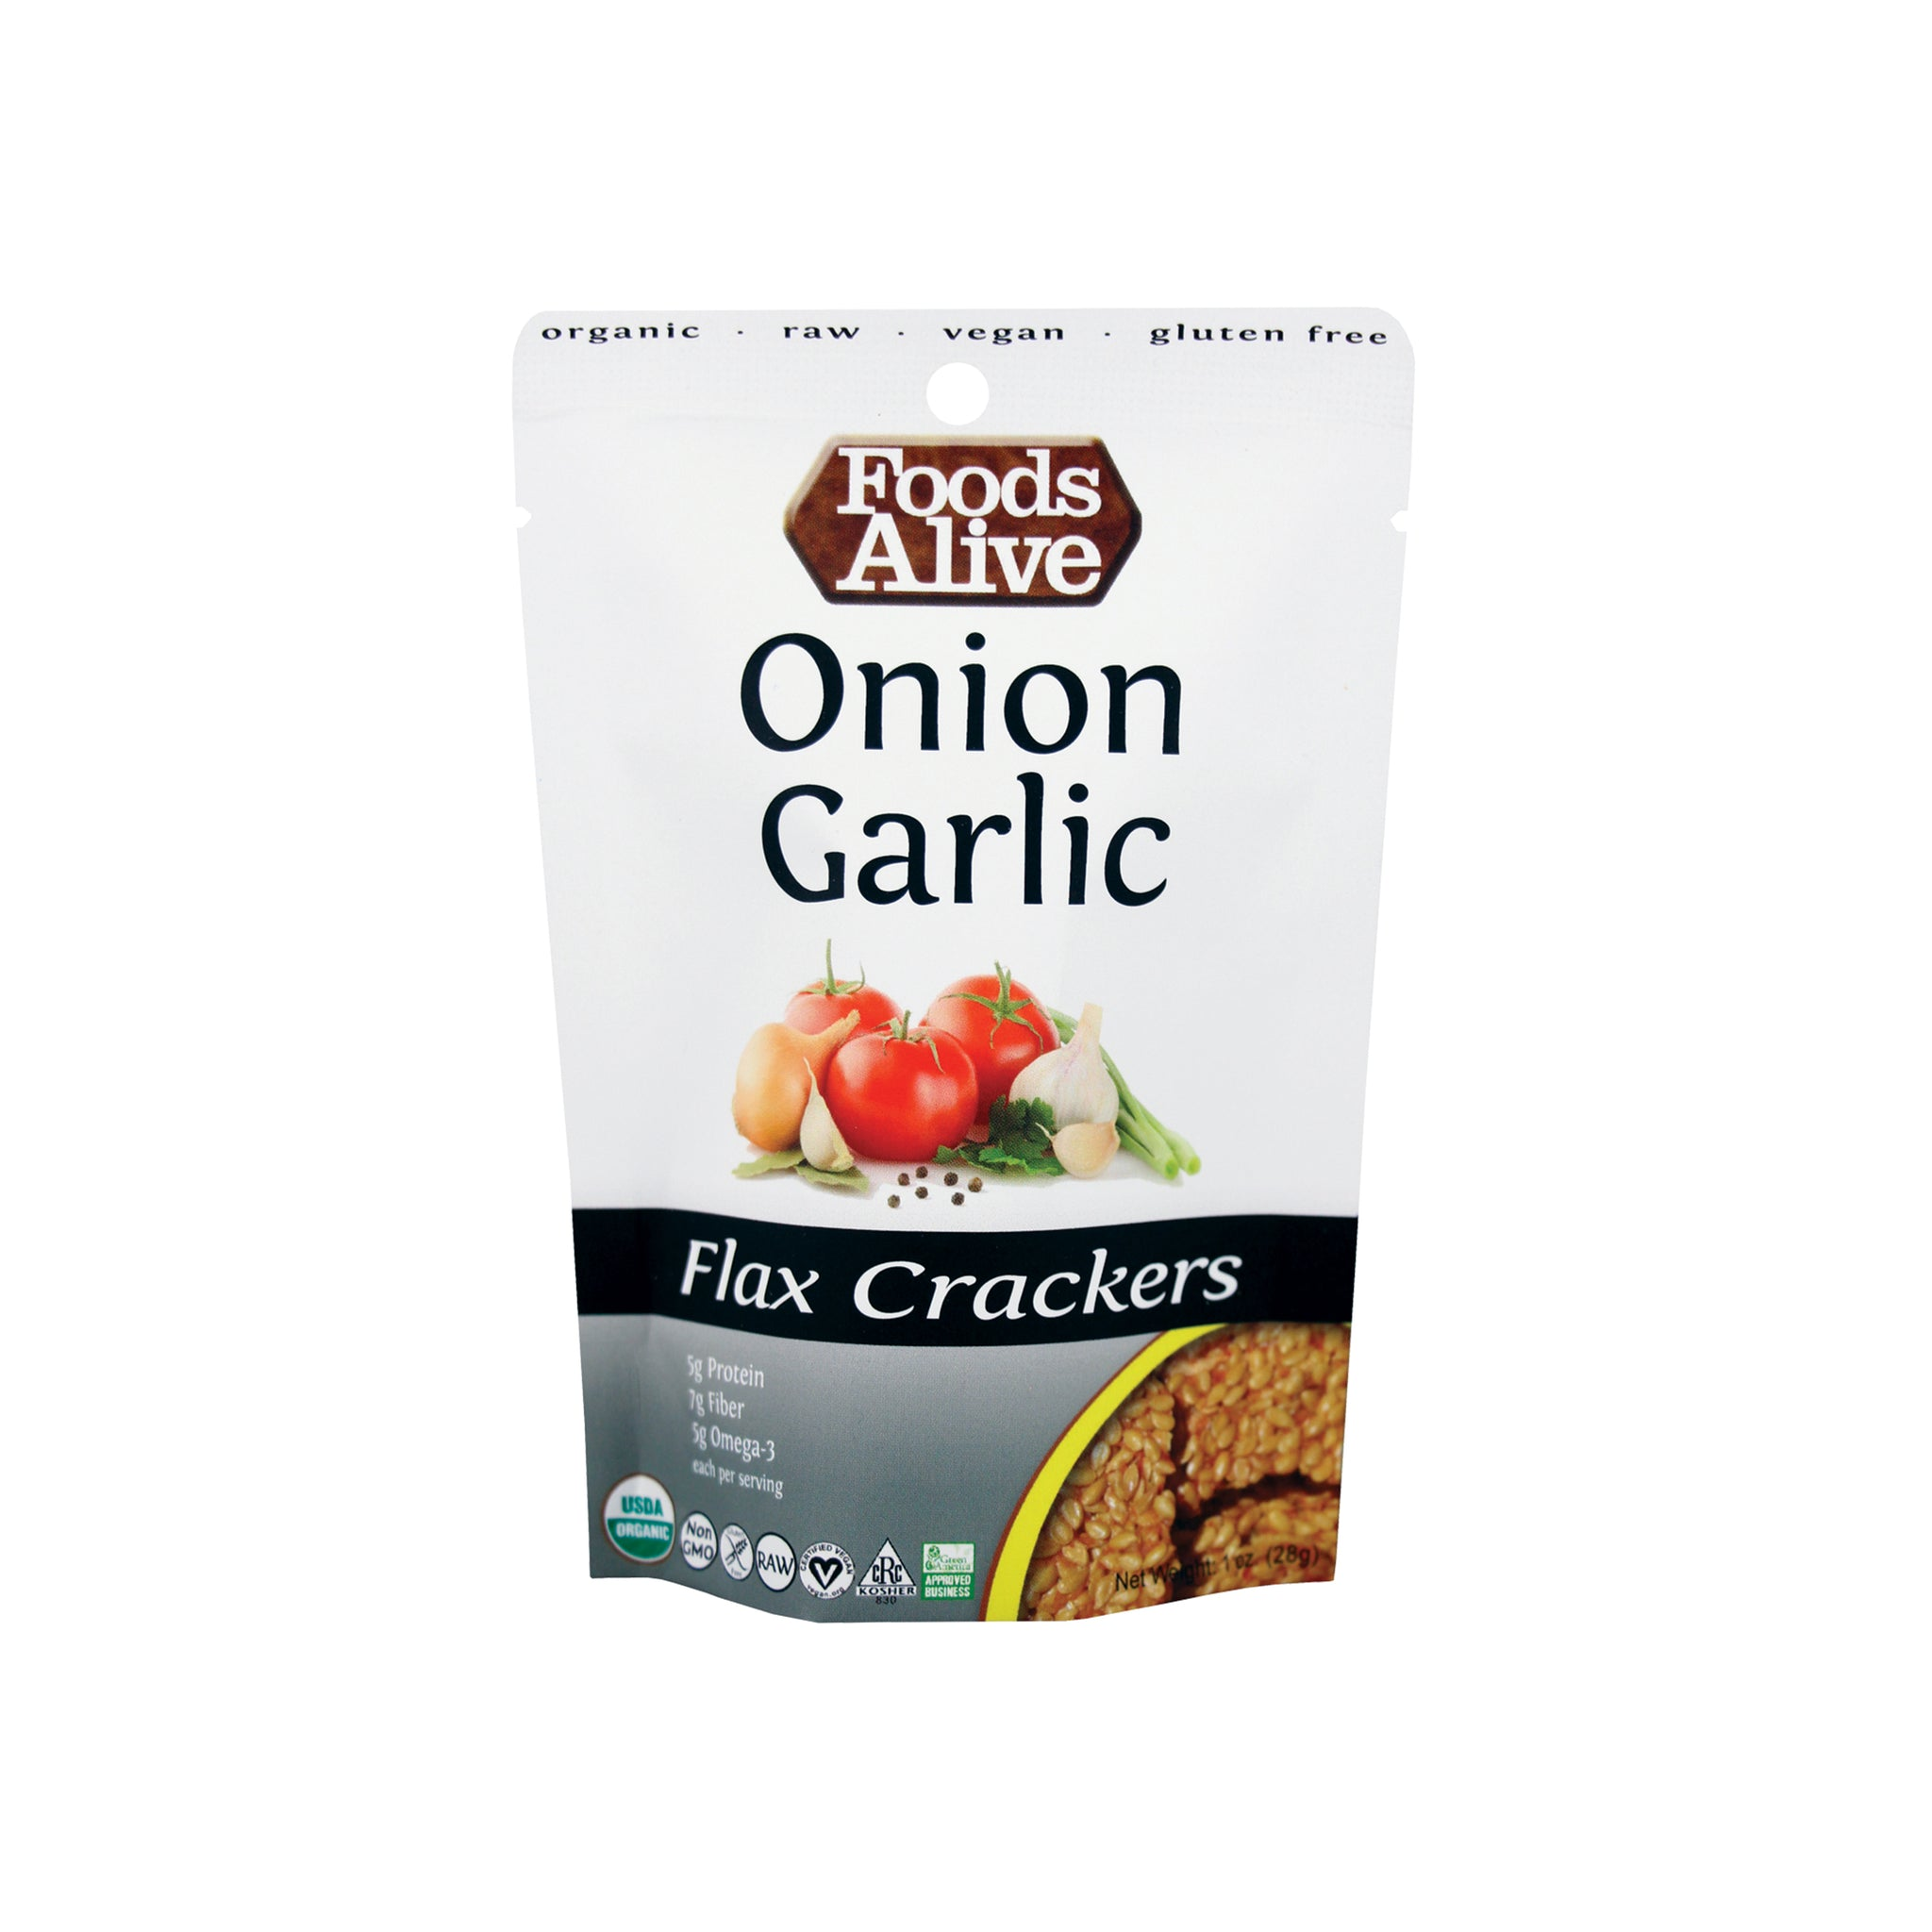 Foods Alive - Organic Flax Crackers - Onion Garlic & Original - 1 oz